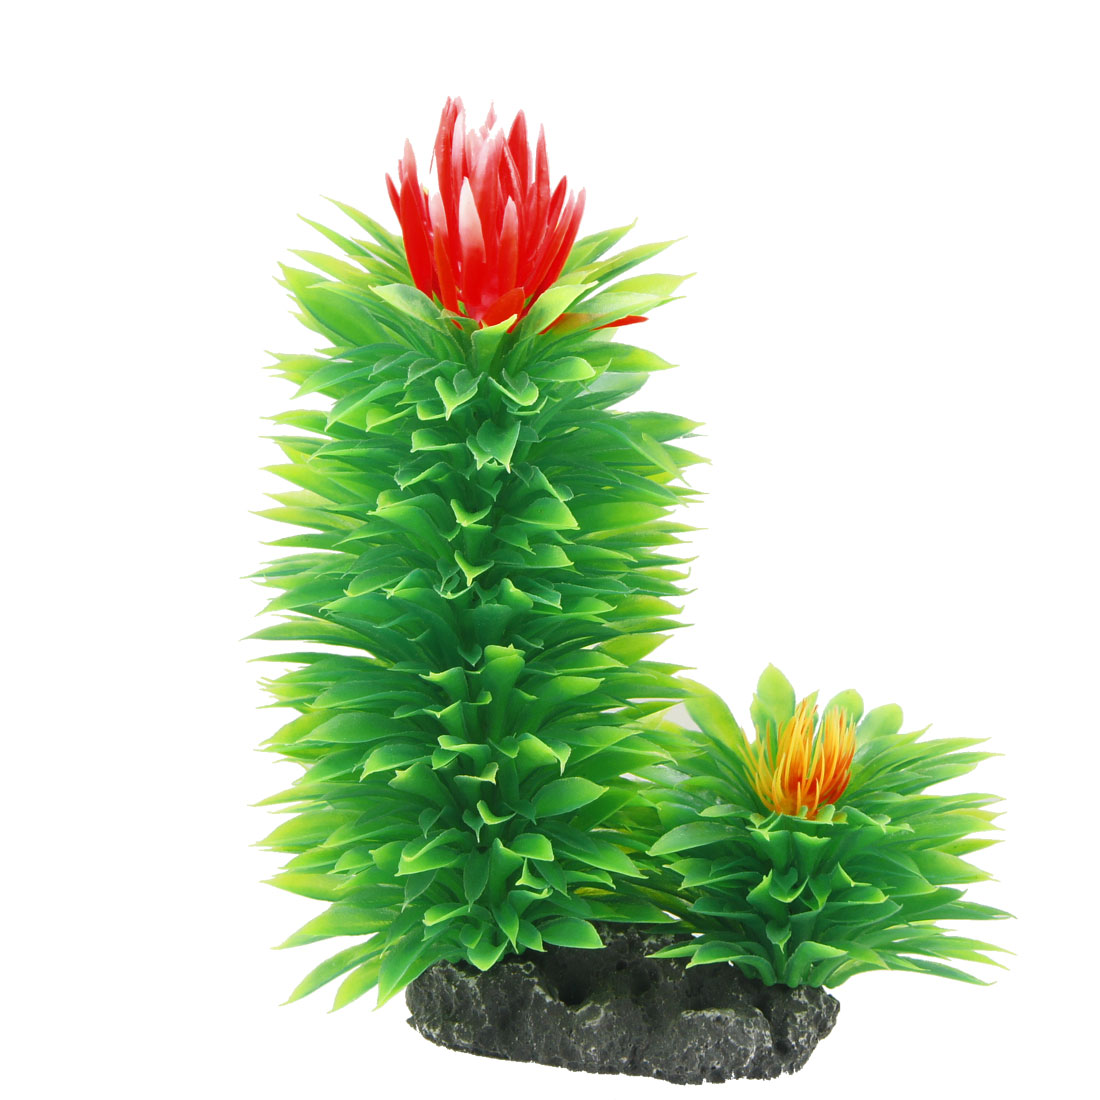 Emulational Plant Grass Aquarium Fish Tank Decor Green Red 6.5""